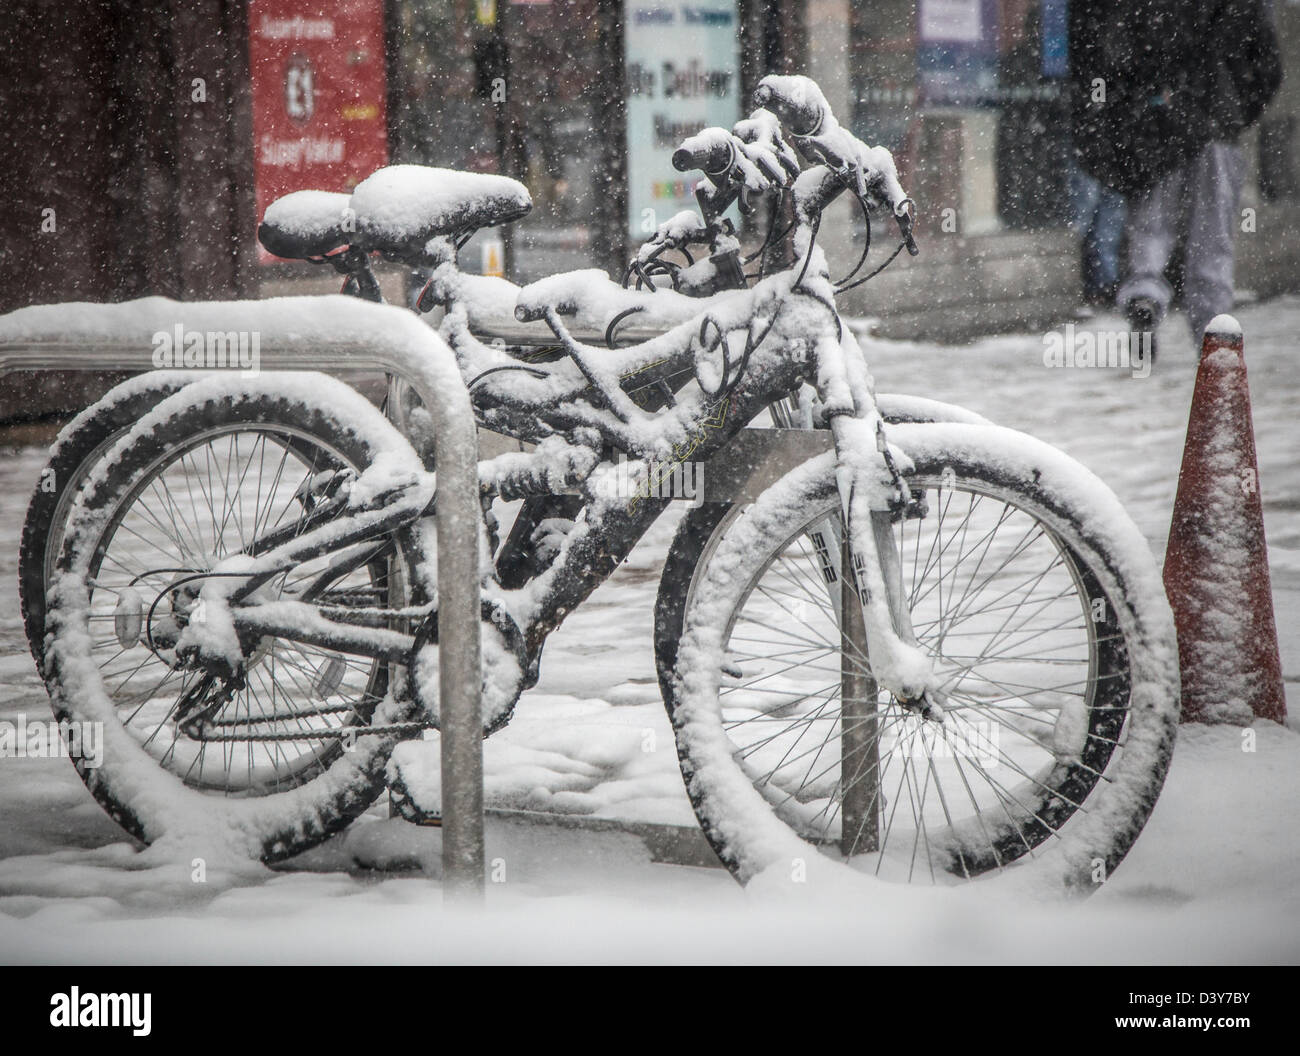 Two bicycles covered in snow await their riders after heavy snowfall hit the UK. - Stock Image